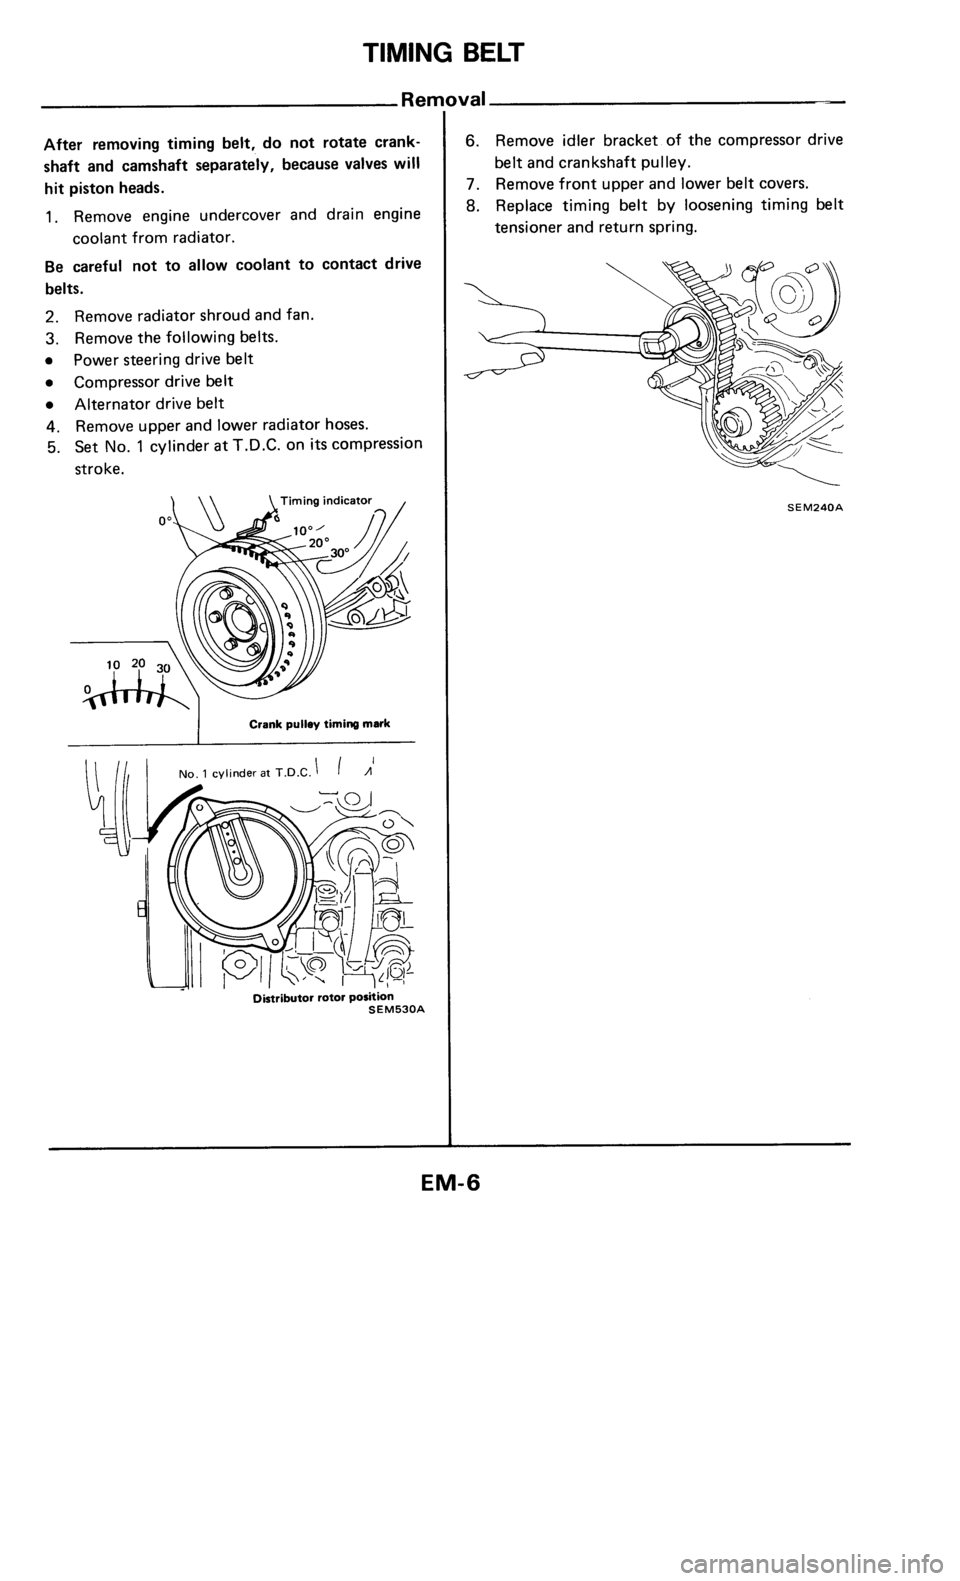 NISSAN 300ZX 1984 Z31 Engine Mechanical Workshop Manual, Page 6